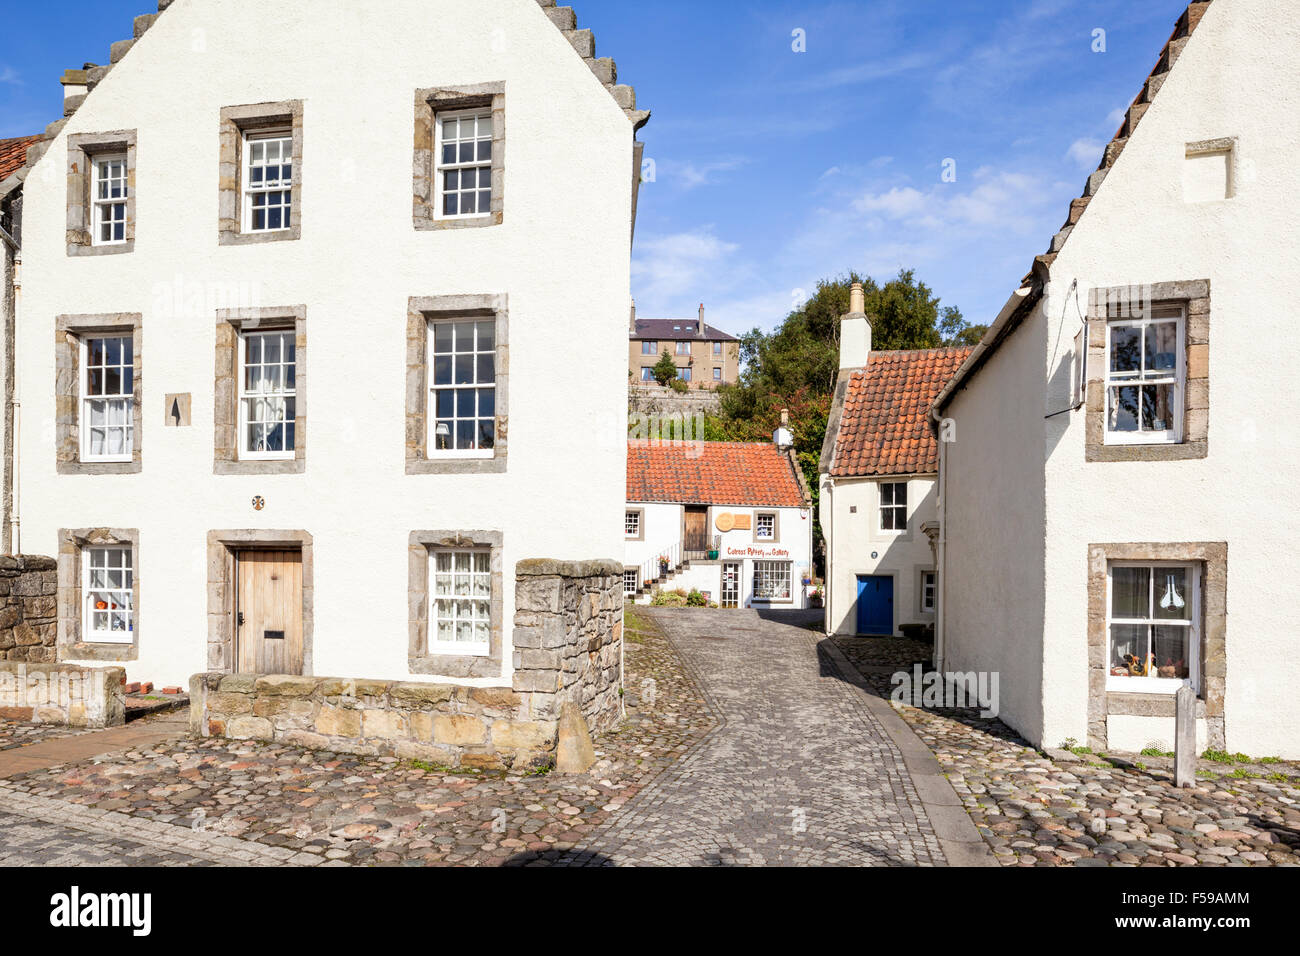 Historic buildings in the Royal Burgh of Culross, Fife, Scotland UK - Stock Image